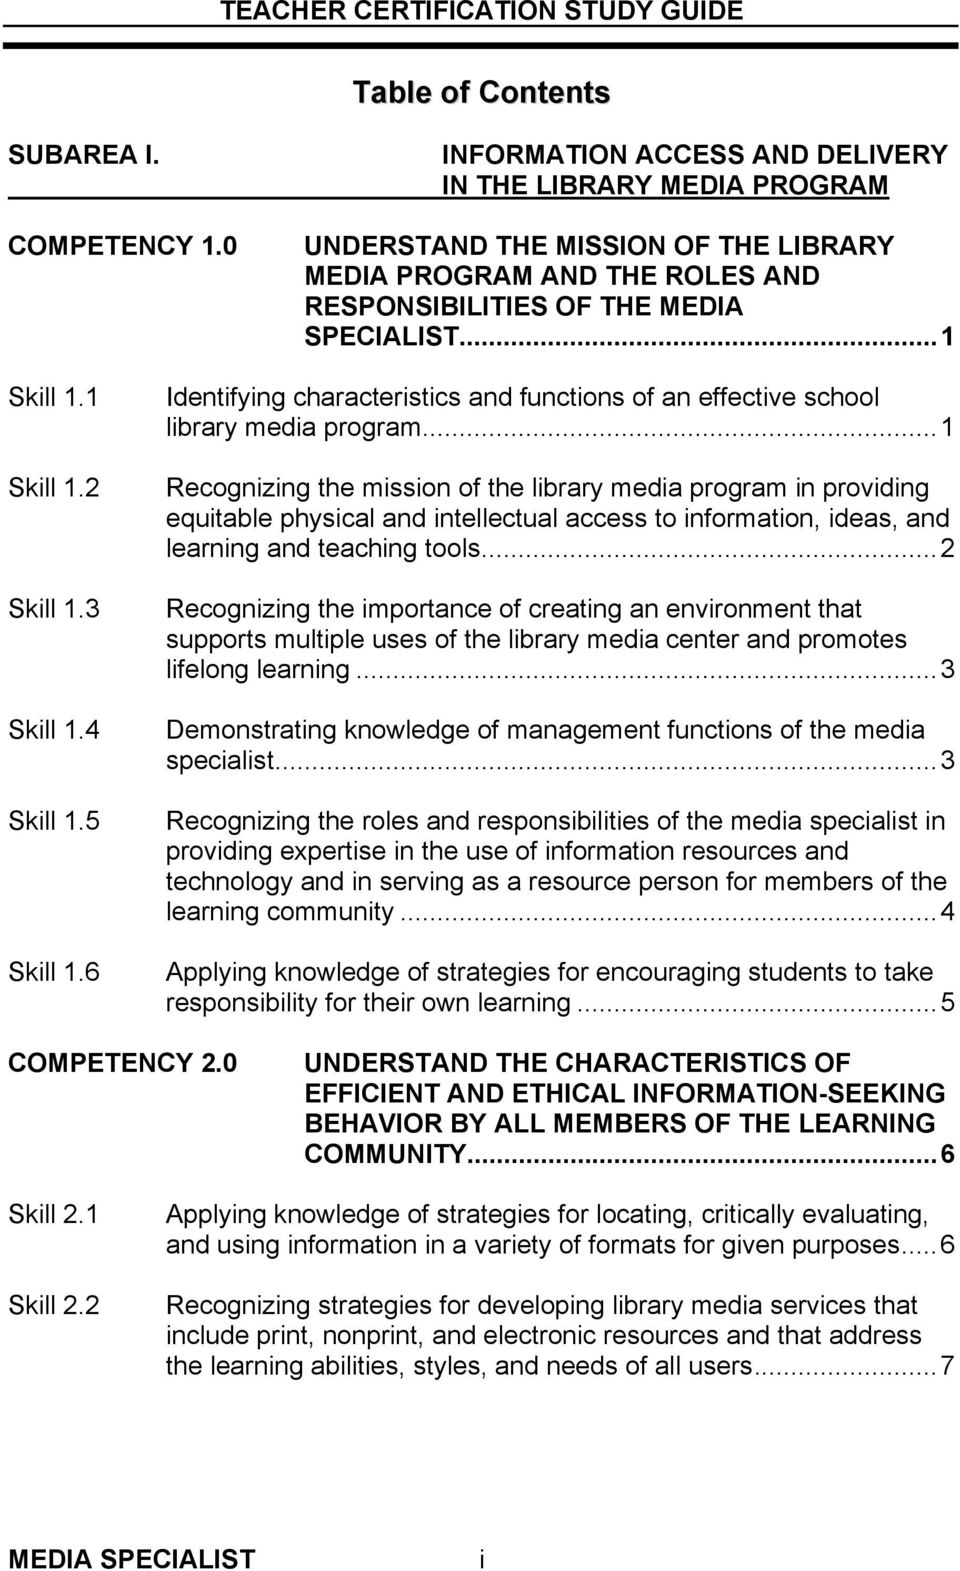 3 Skill 1.4 Skill 1.5 Skill 1.6 Identifying characteristics and functions of an effective school library media program.